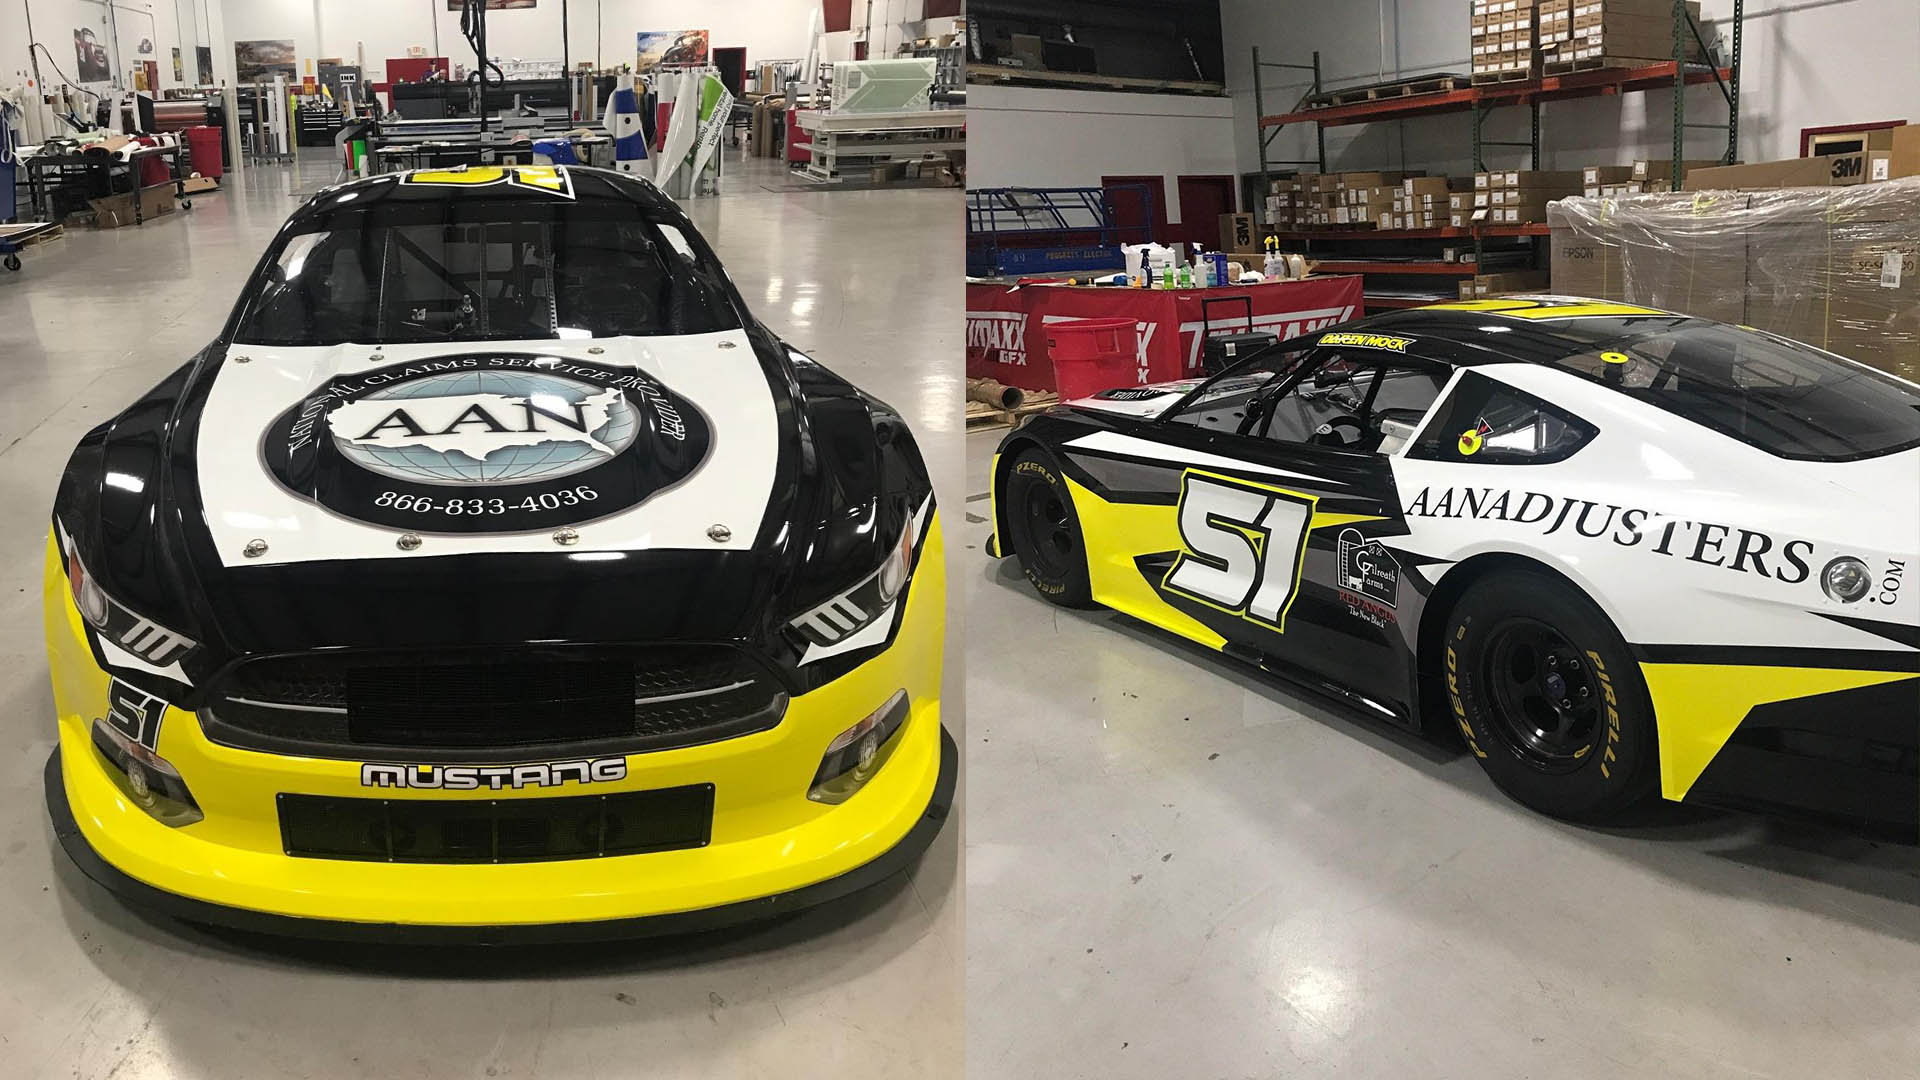 Darin Mock running for AAN Adjuster in the Trans AM series